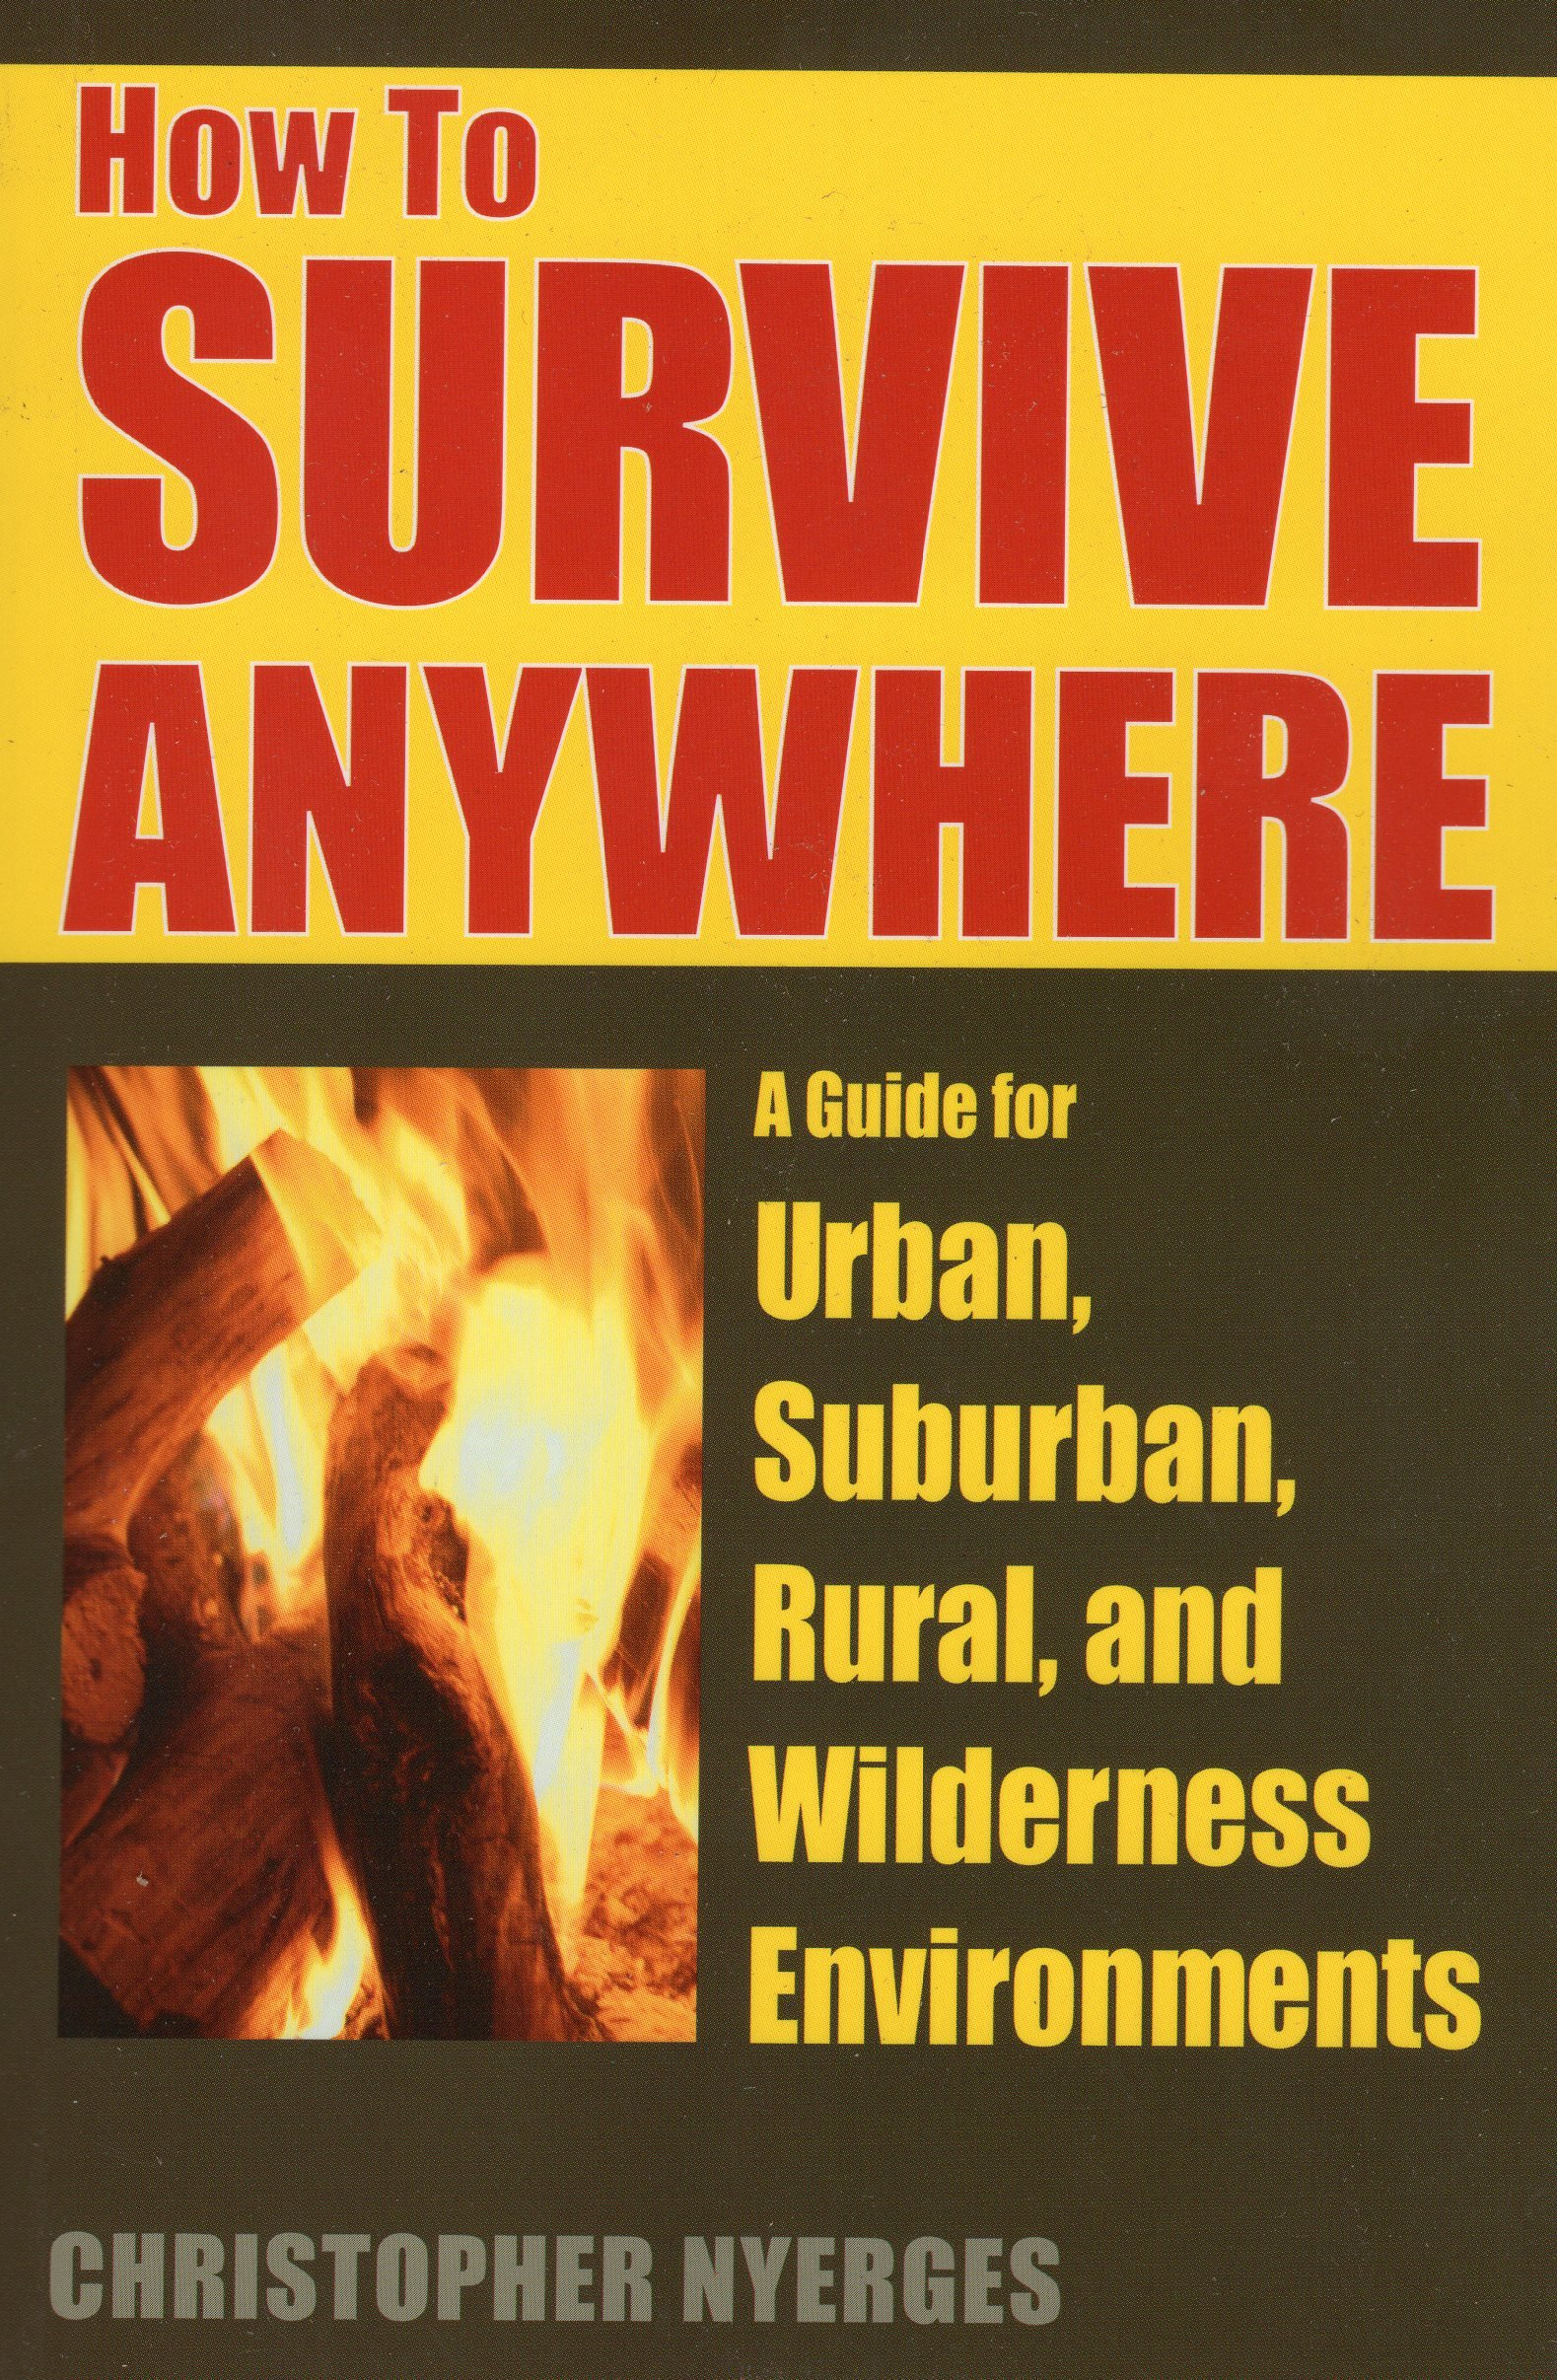 Download How to Survive Anywhere: A Guide for Urban, Suburban, Rural, and Wilderness Environments ebook